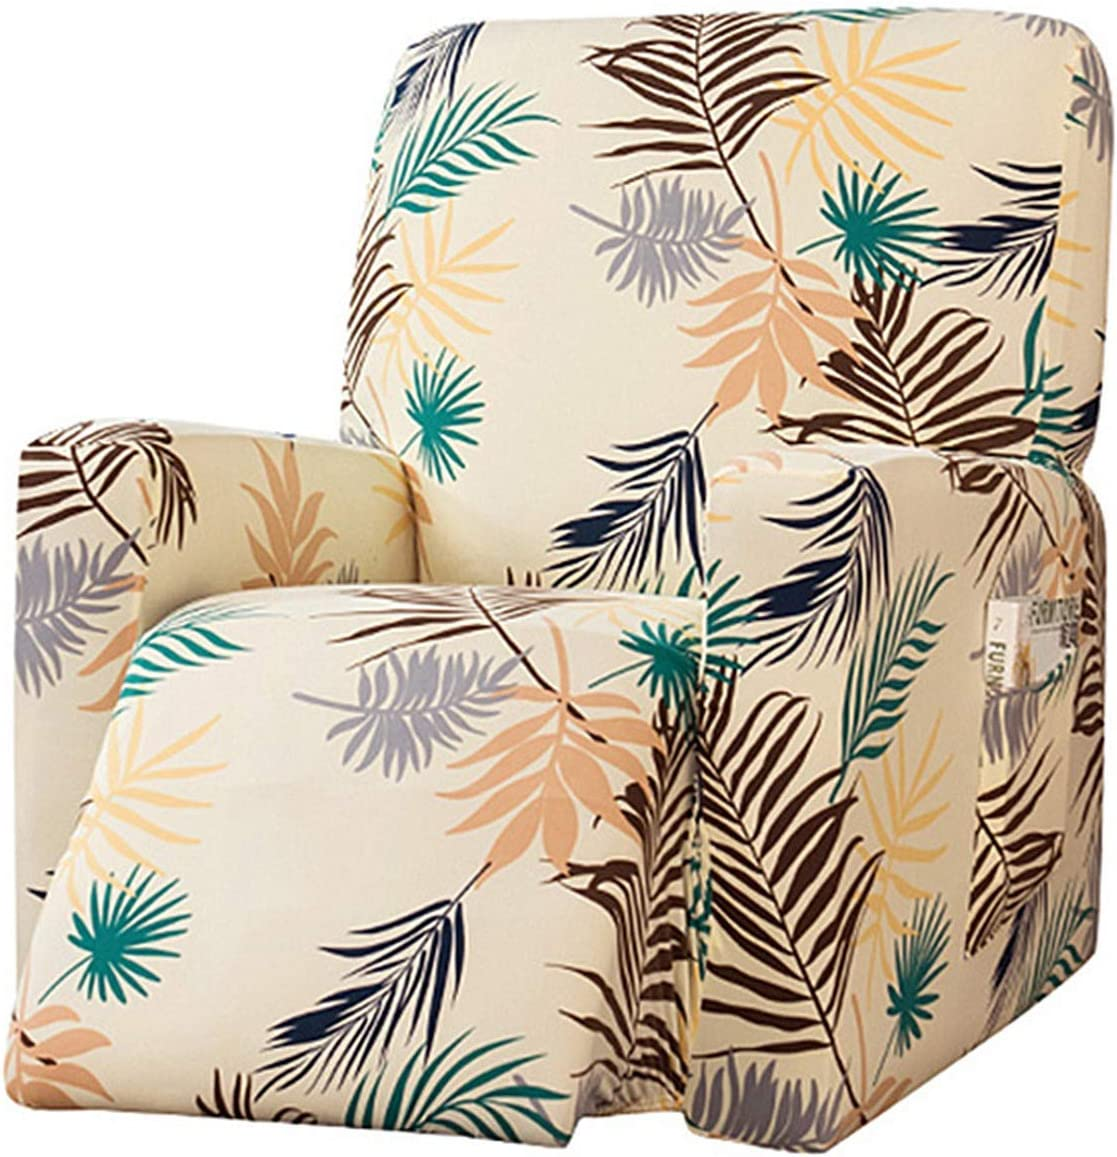 YUENA CARE Stretch Recliner Slipcovers National uniform free shipping Chair Printed Covers for Gifts